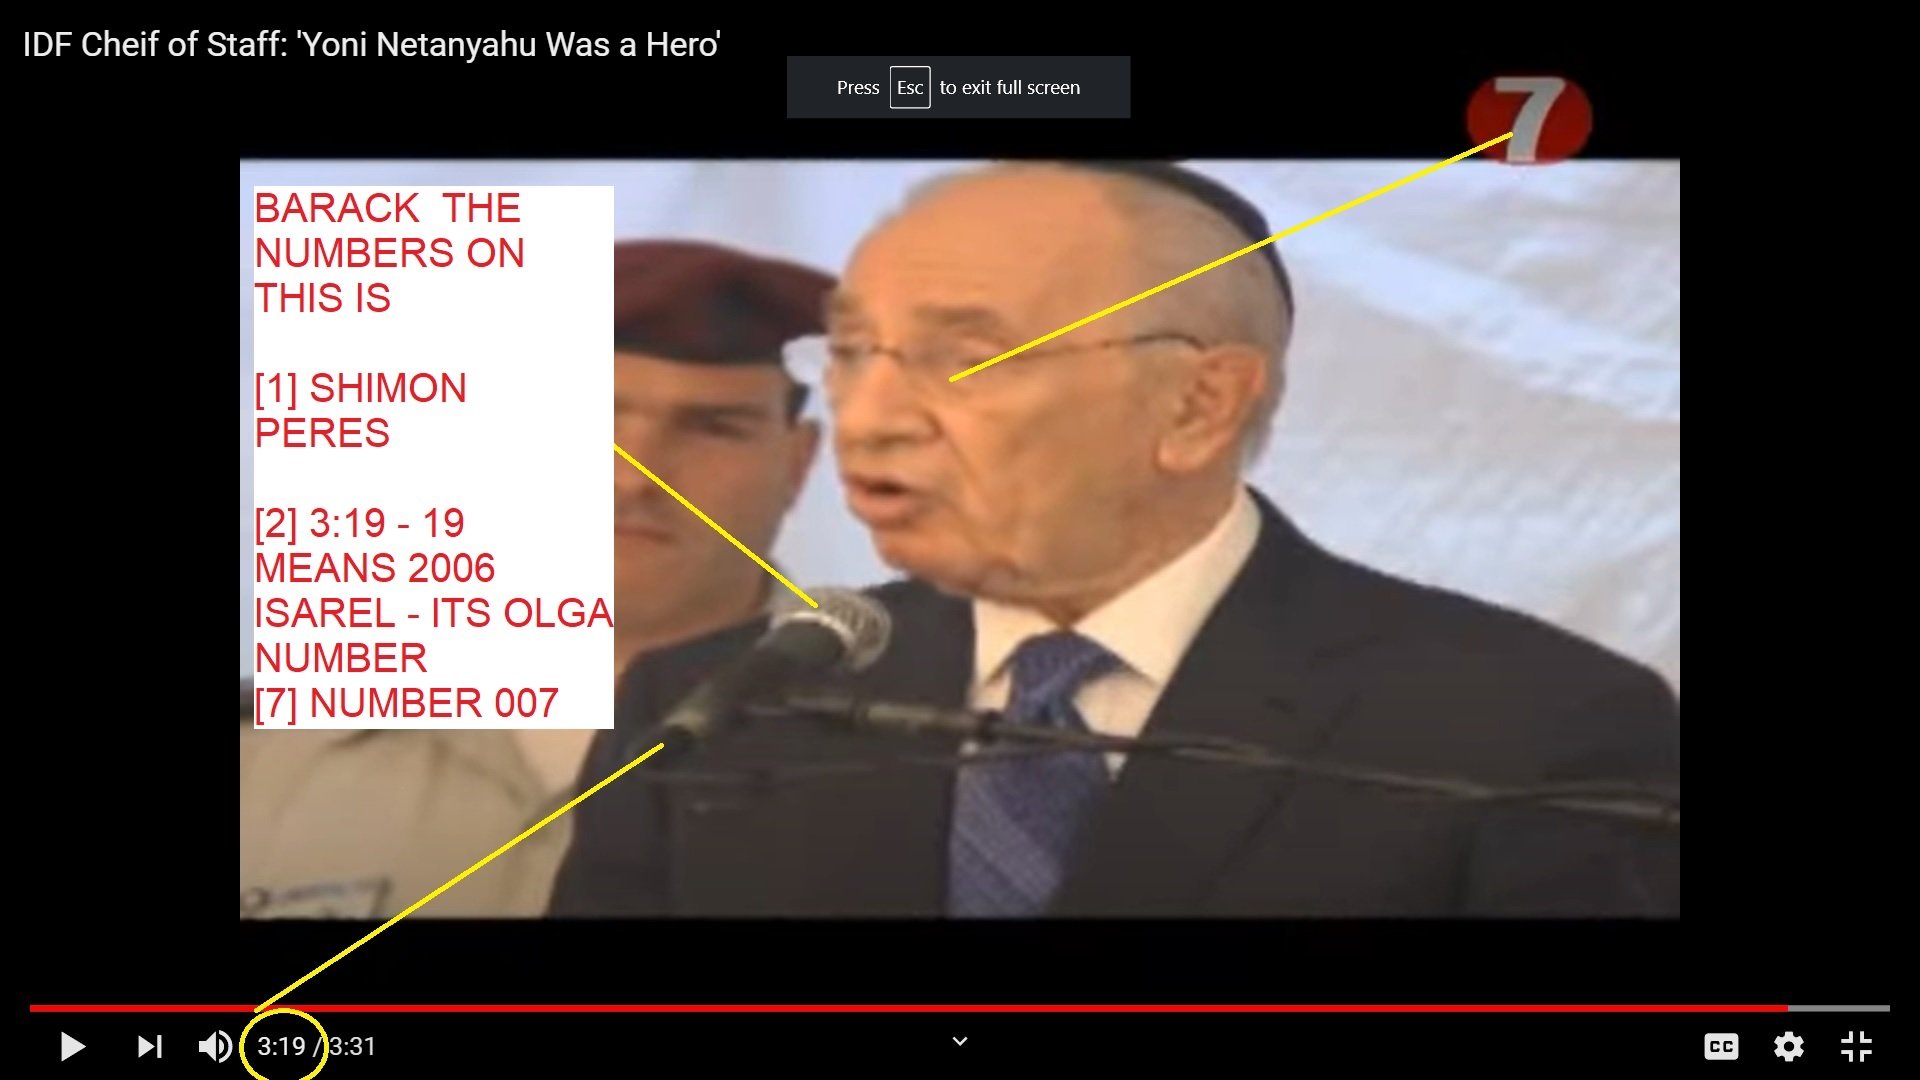 SHIMON PERES YONI NETANAYHU THE 1987 GAUSSIAN PRIME NUMBER 643361467 NUMBERS